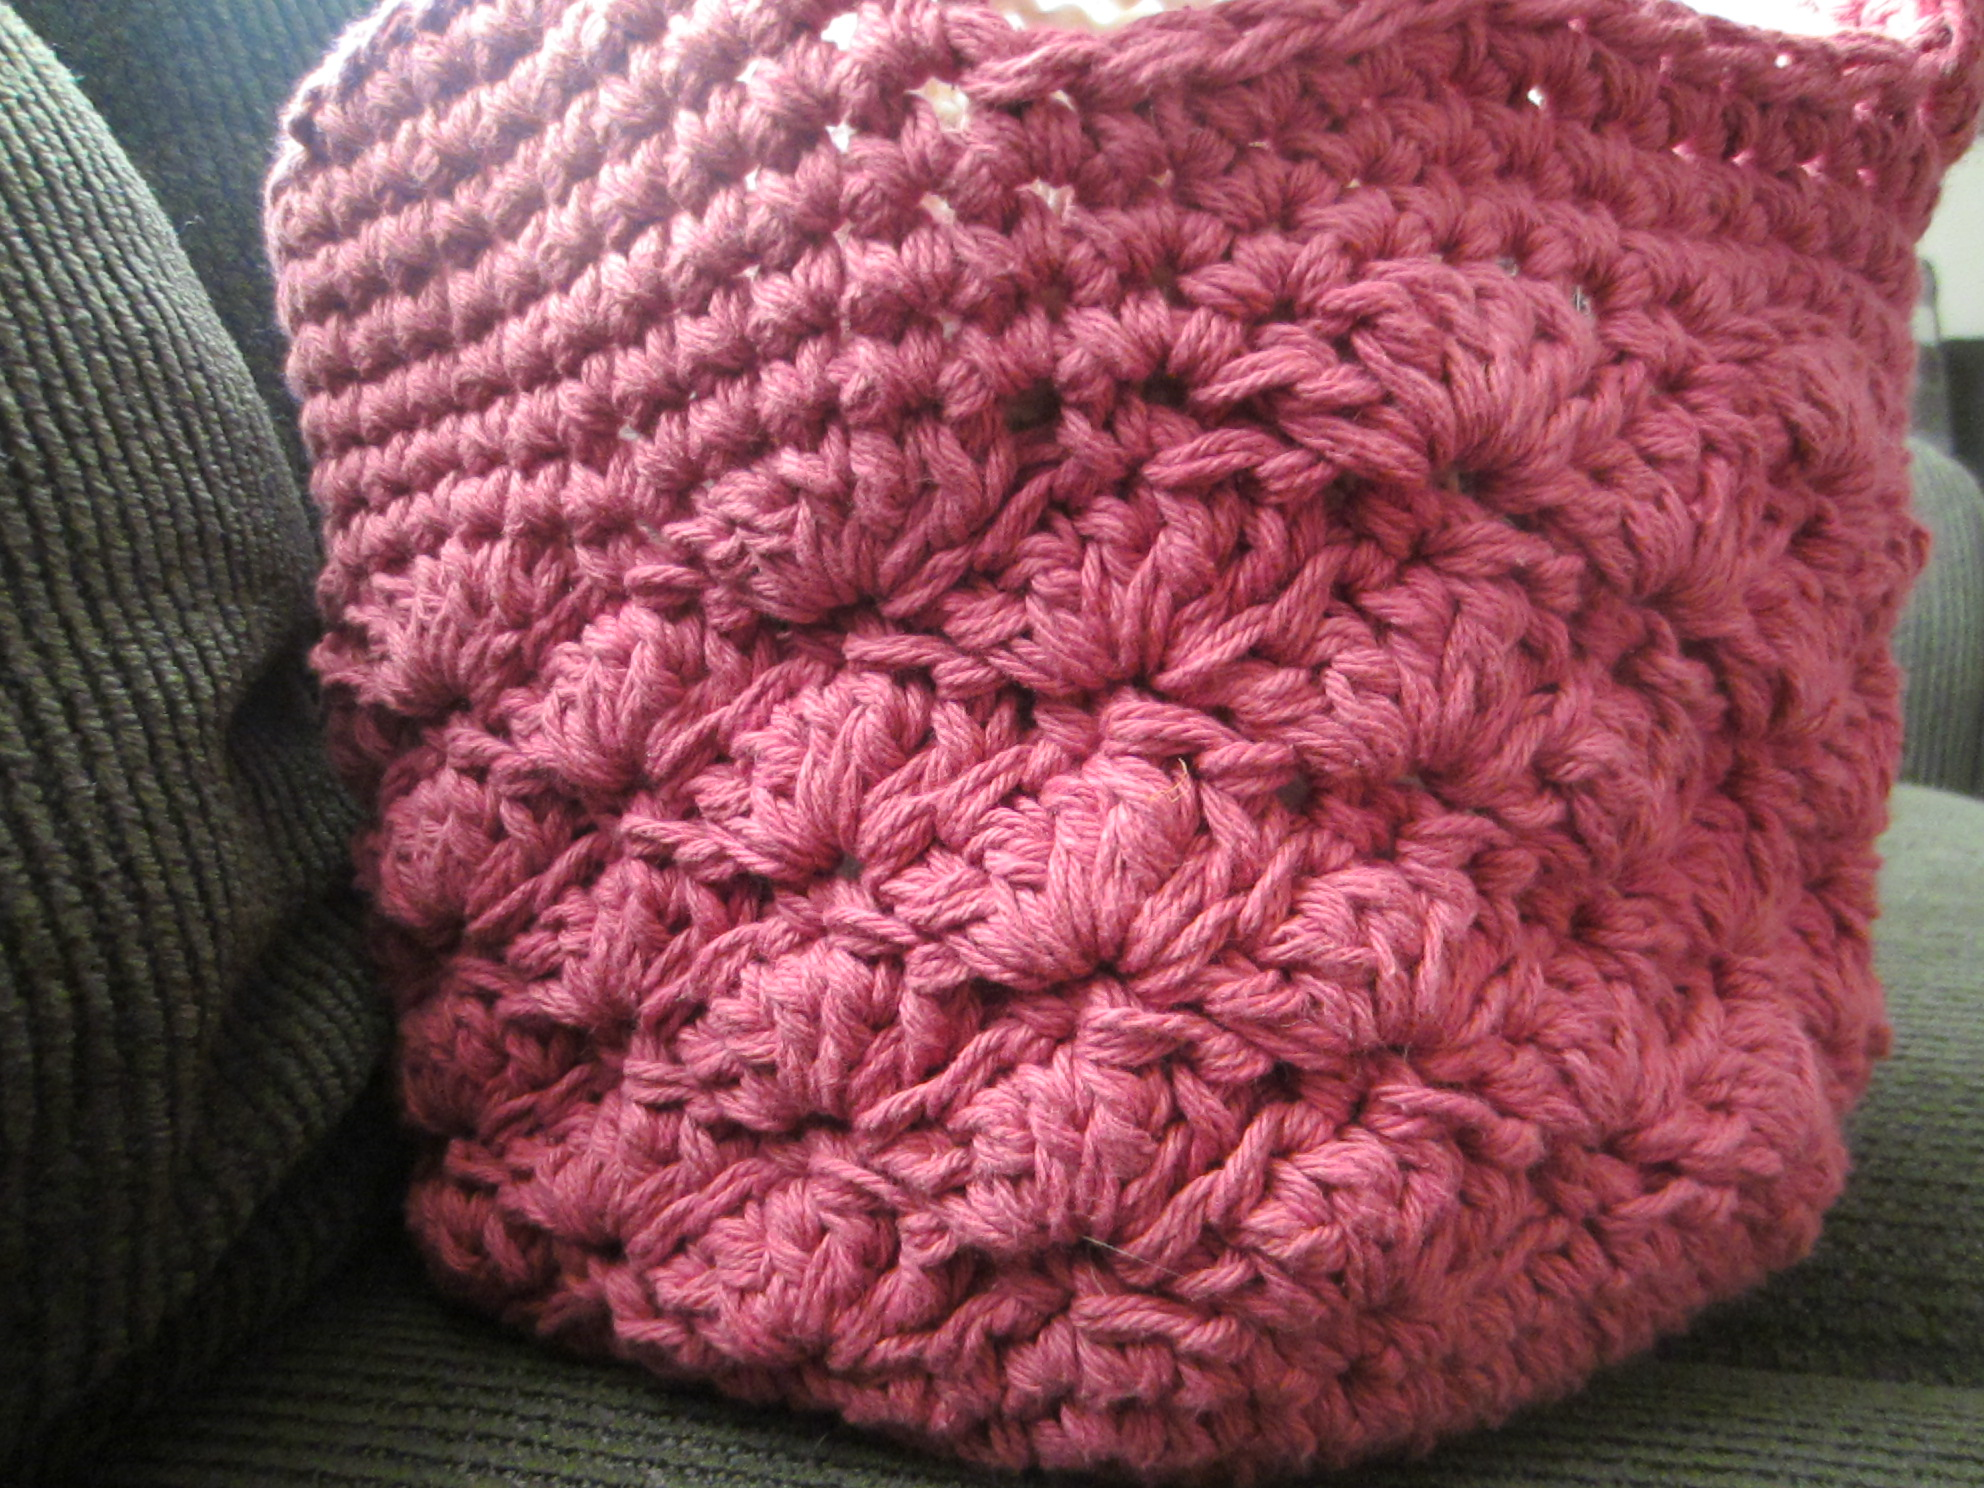 Cotton Crochet Yarn : By gmaellenscraftycorner Published April 26, 2013 Full size is ...